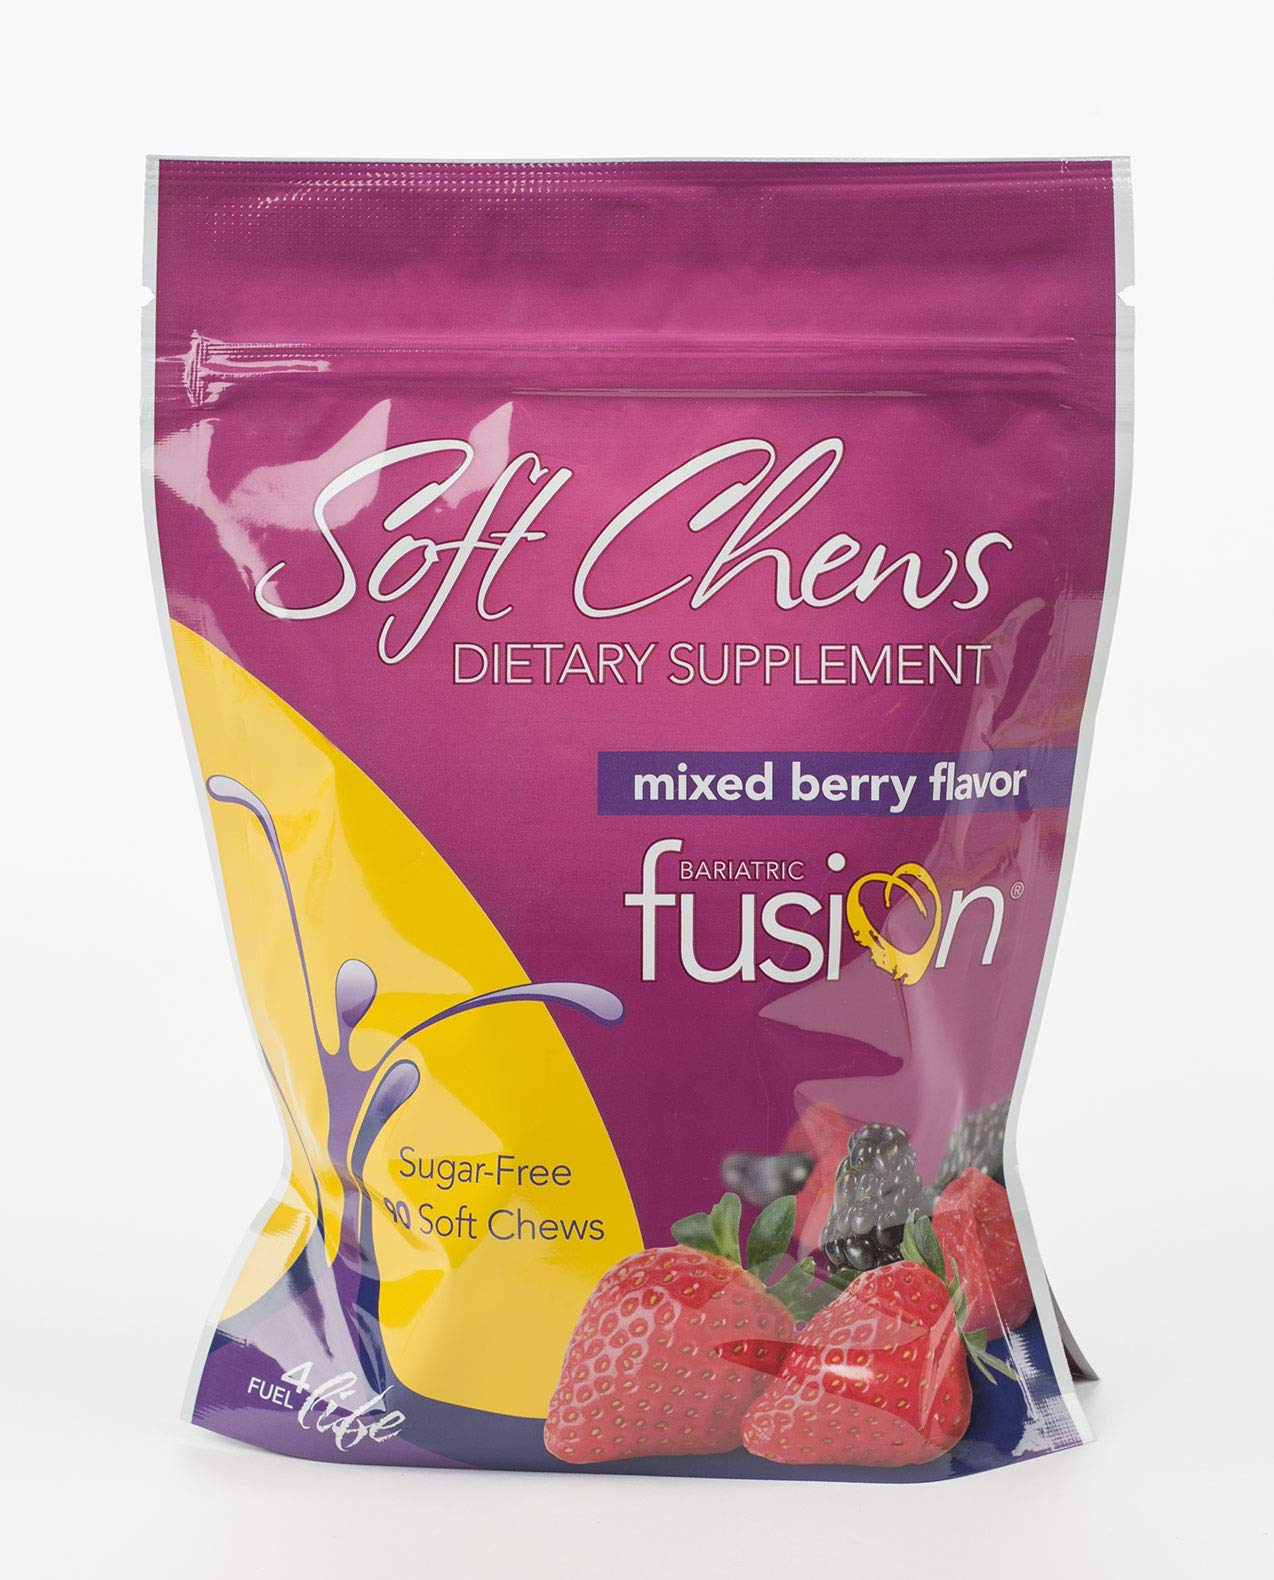 Bariatric Fusion Dietary Multivitamin Supplement Soft Chews Mixed Berry for Gastric Bypass and Sleeve Gastrectomy, 90 Count by Bariatric Fusion (Image #2)